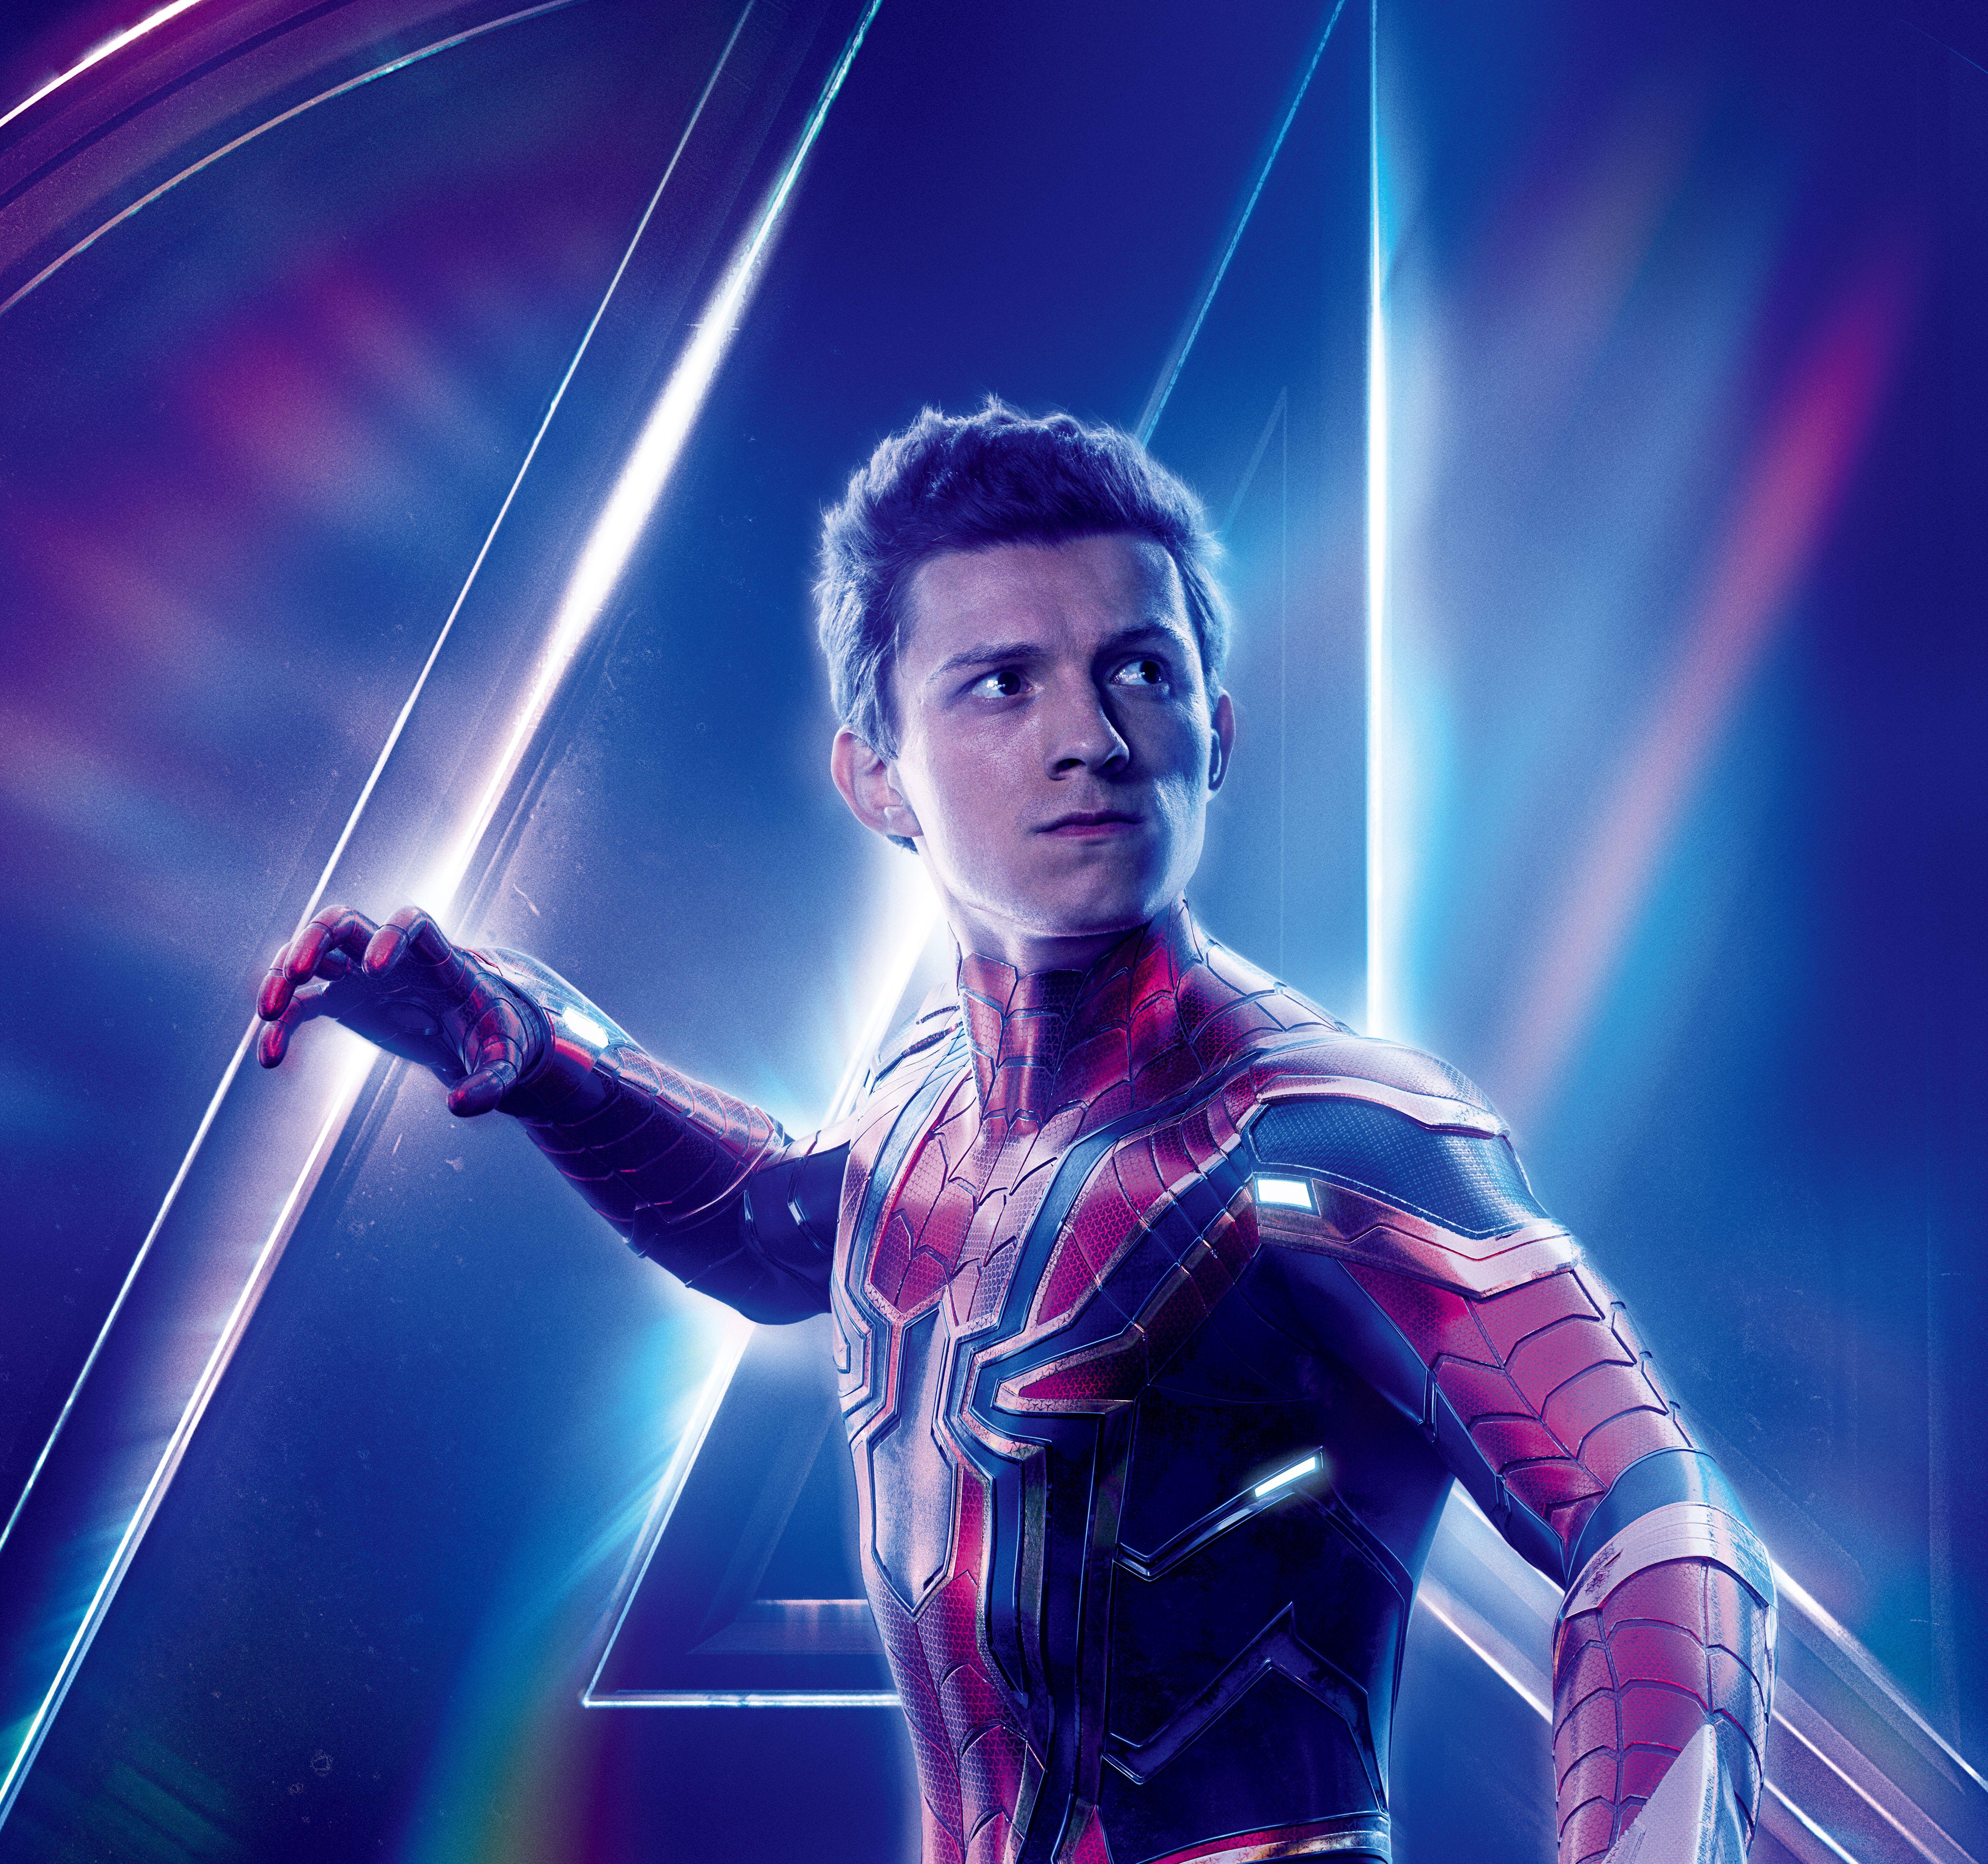 Wallpapers Avengers: Infinity War, Tom Holland, Peter Parker, Spider